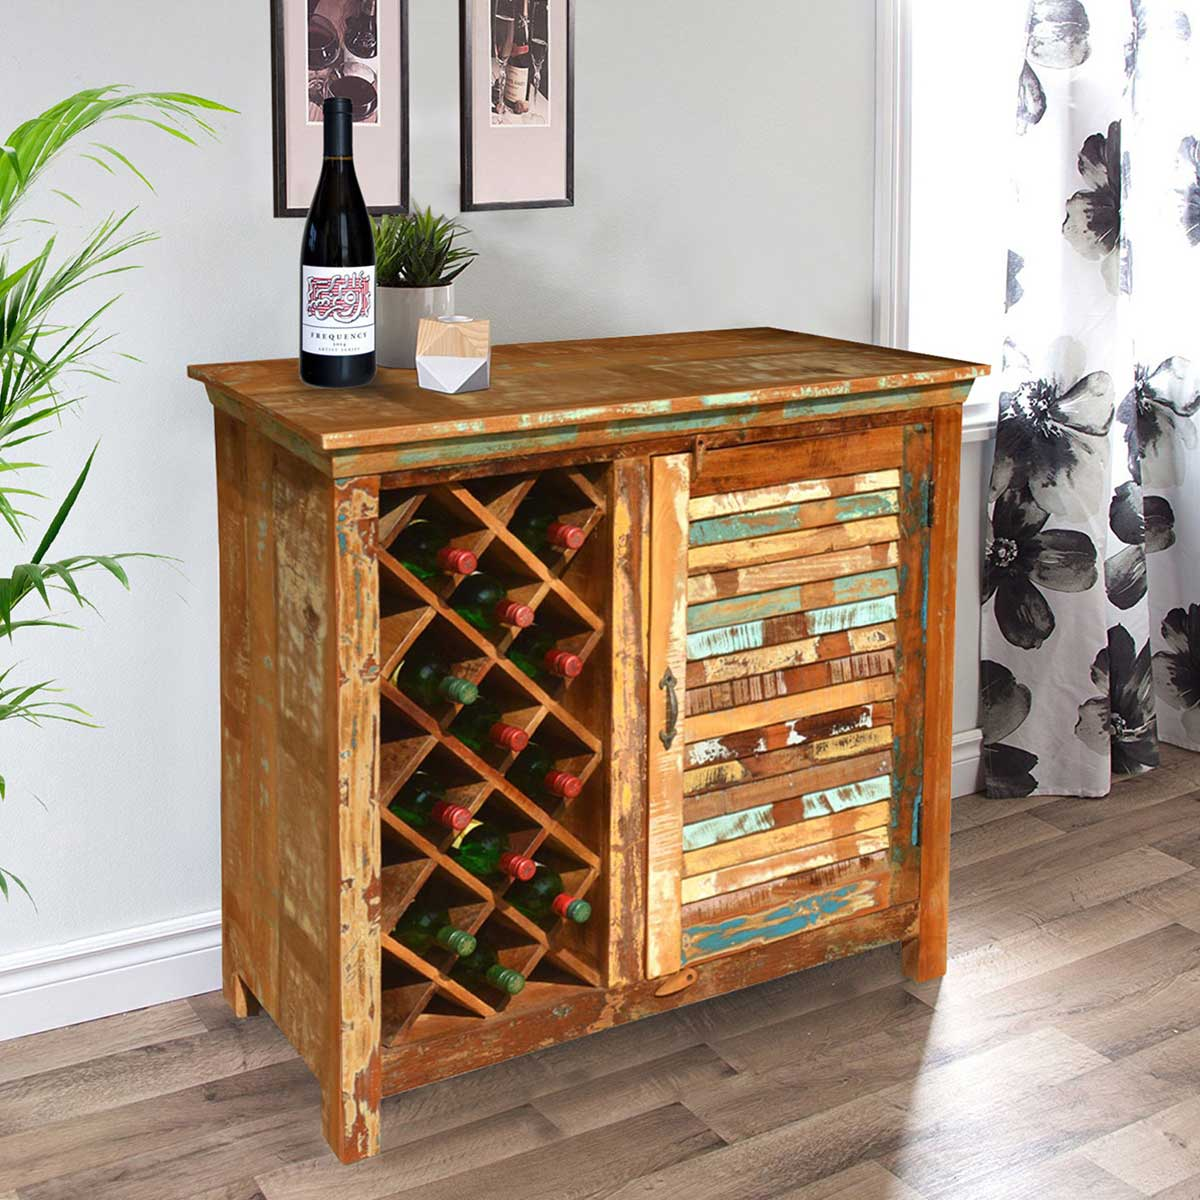 trend rustic kitchen wayfair ideas for bar cabinets pallet cabinet liquor building image nsyd and wonderful unbelievable